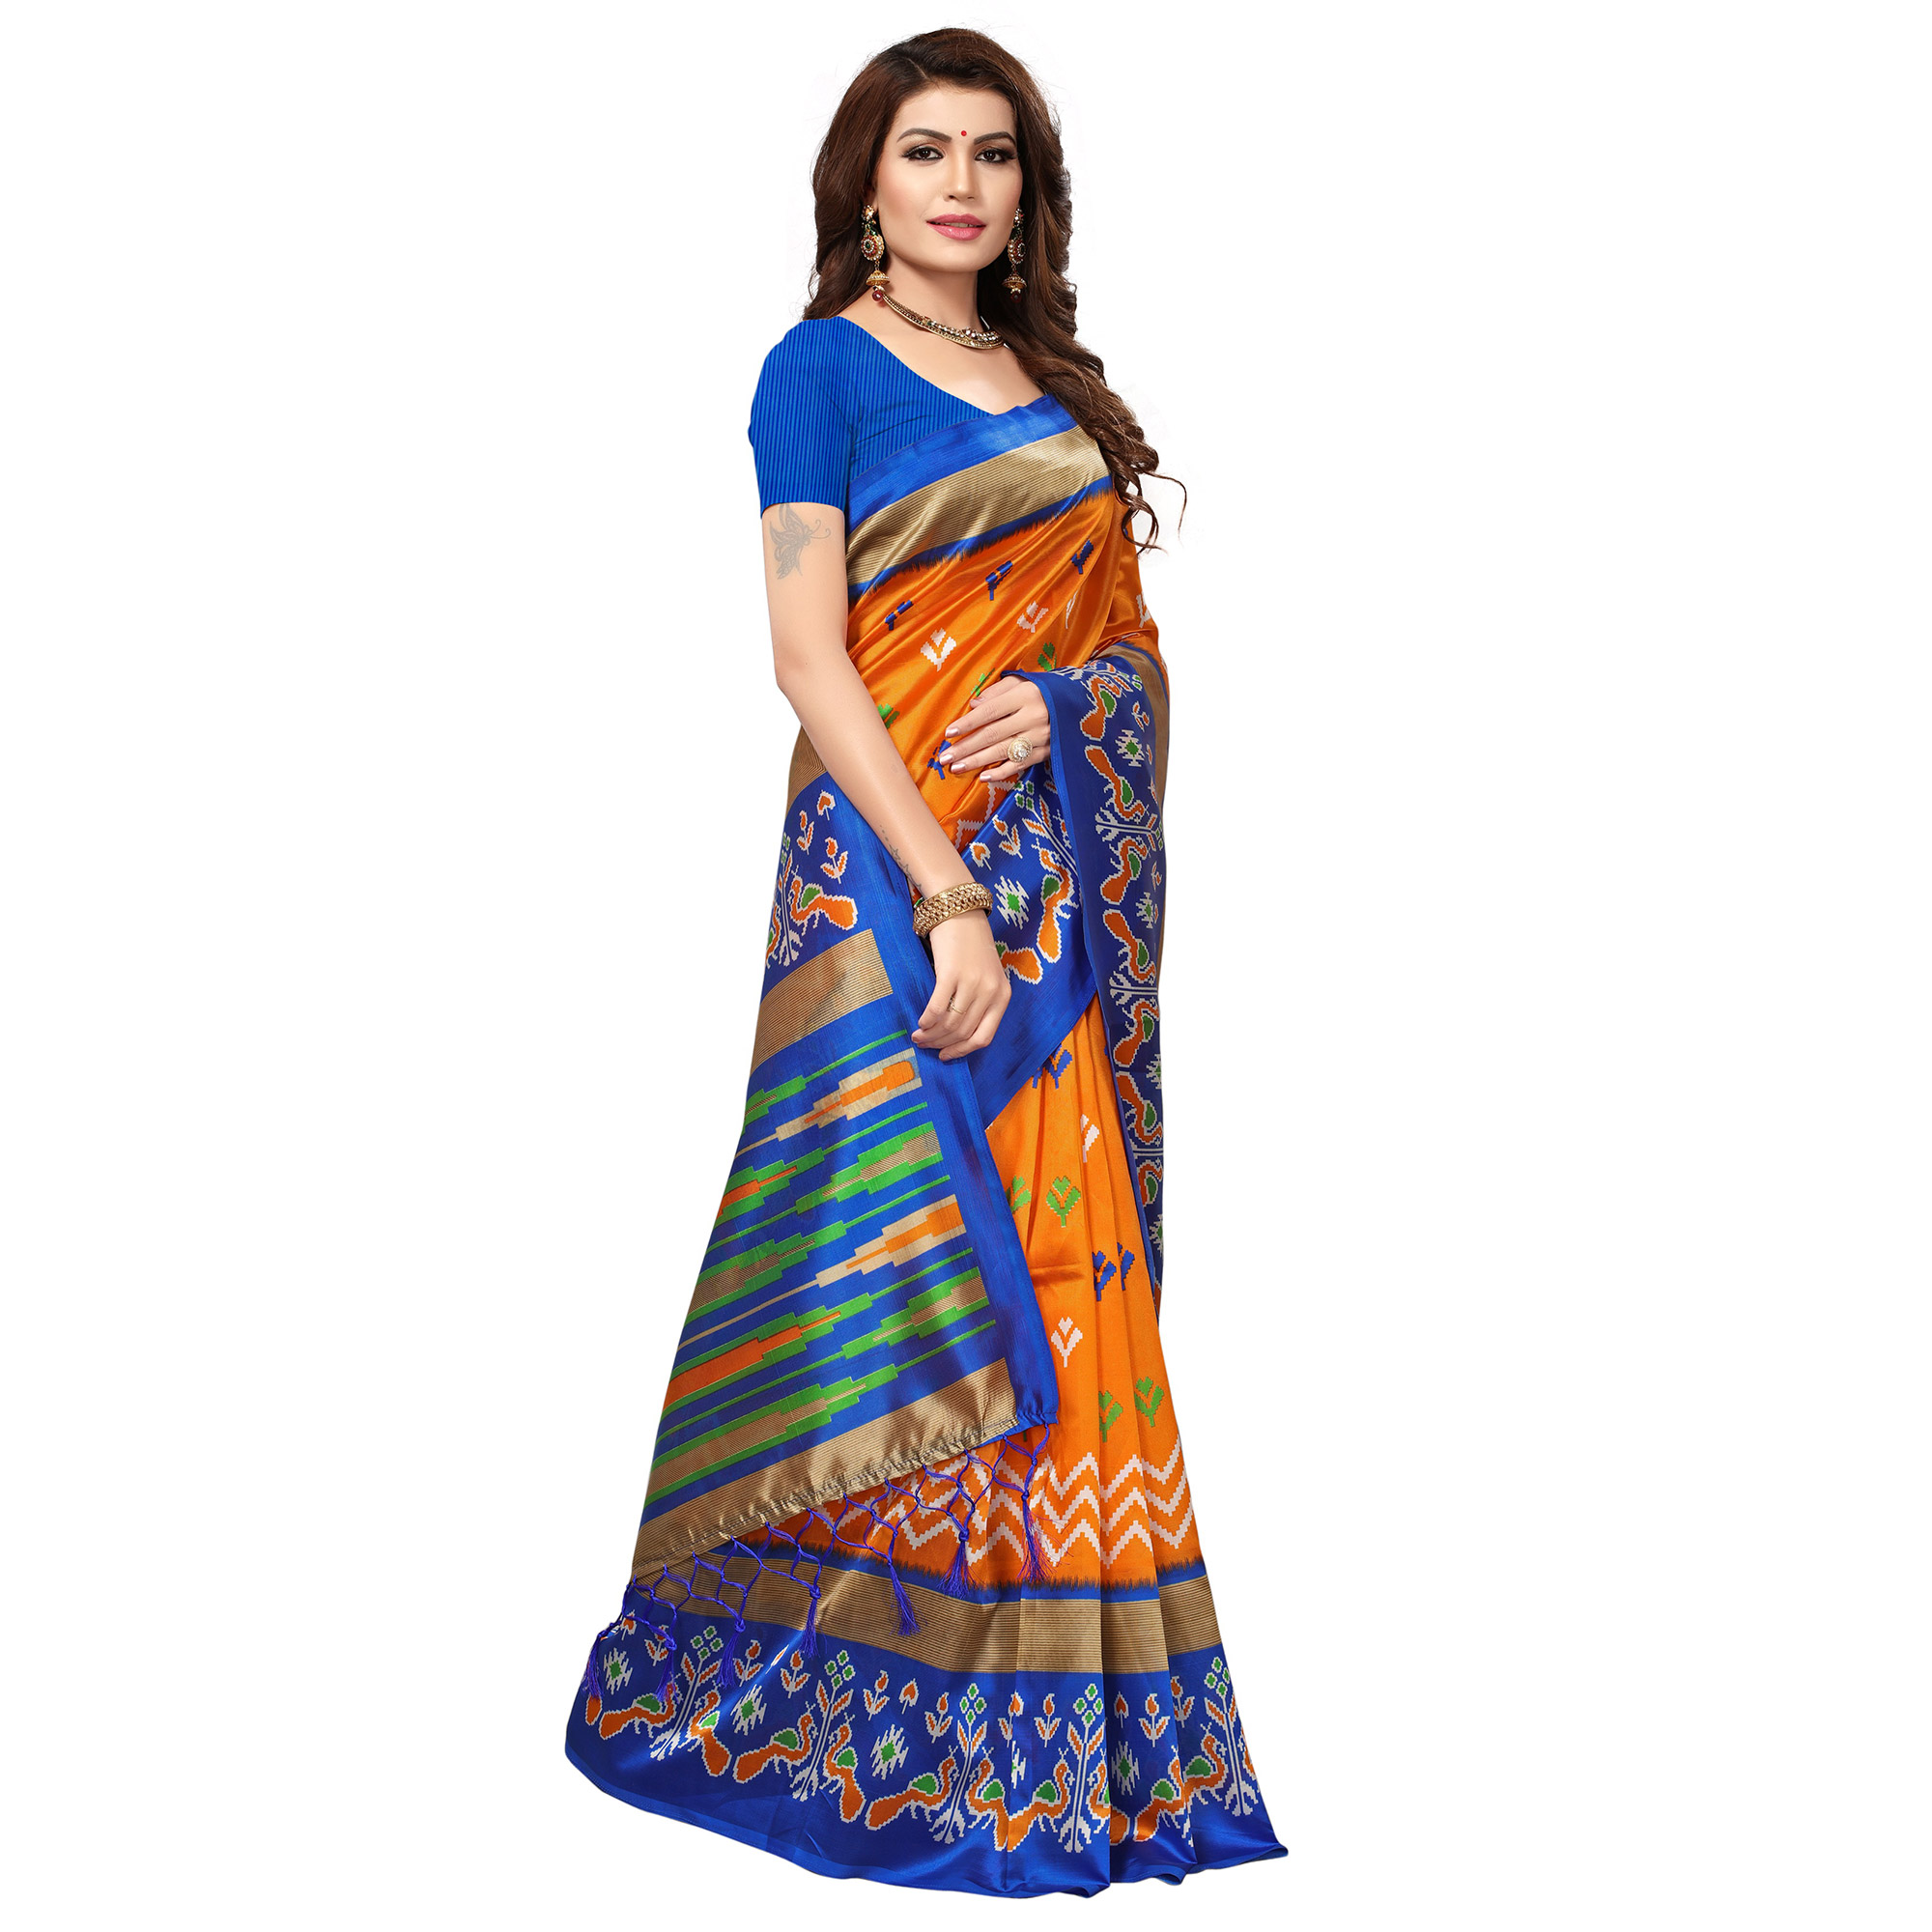 Beautiful Orange-Blue Colored Festive Wear Printed Mysore Art Silk Saree